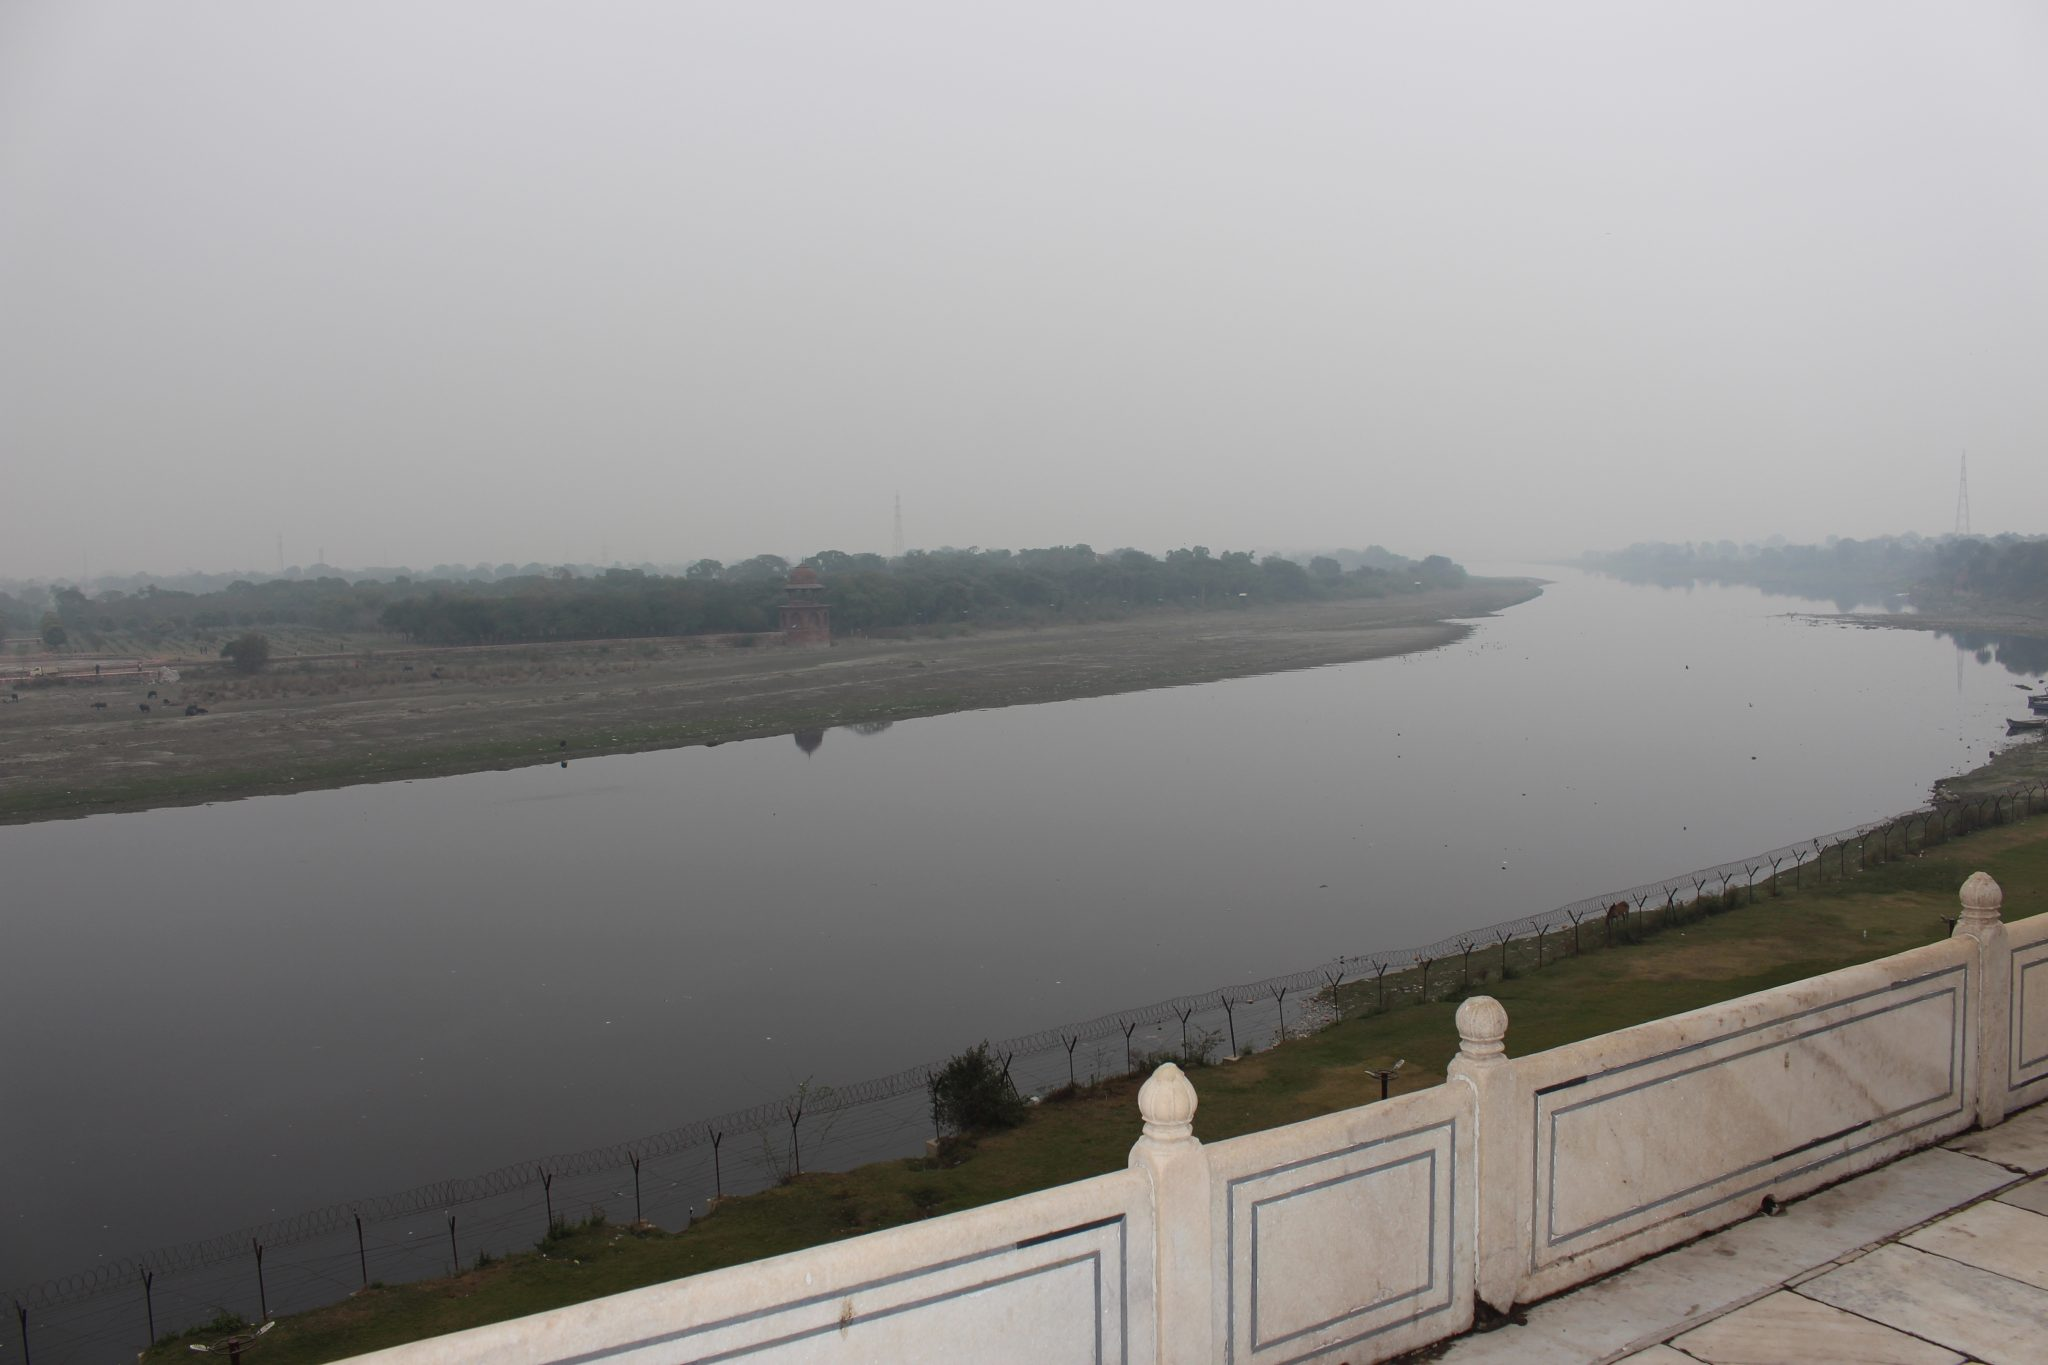 A view of the Yamuna River from the rear of the Taj Mahal Agra India